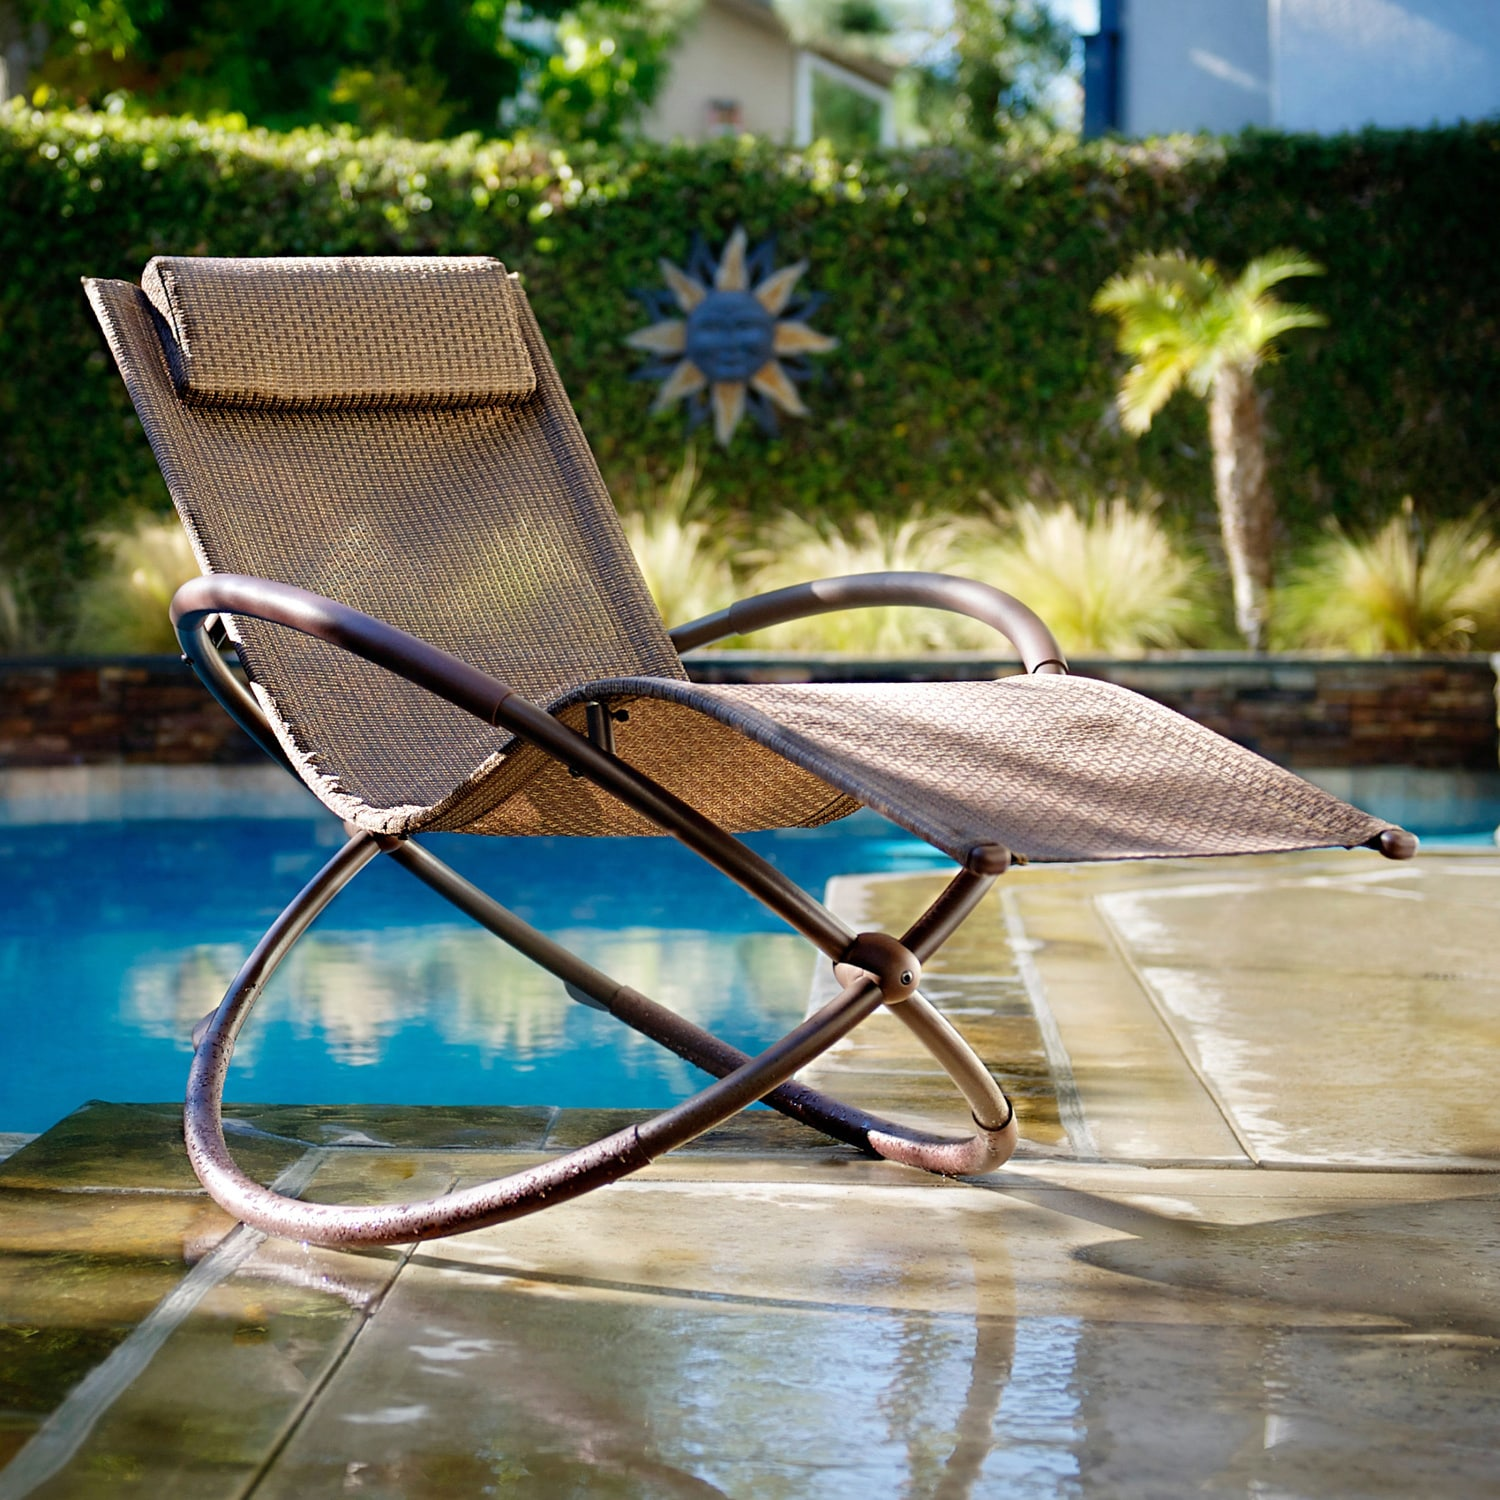 Superb img of RST Brands Orbital Zero Gravity Patio Lounger Rocking Chair  with #156E94 color and 1500x1500 pixels